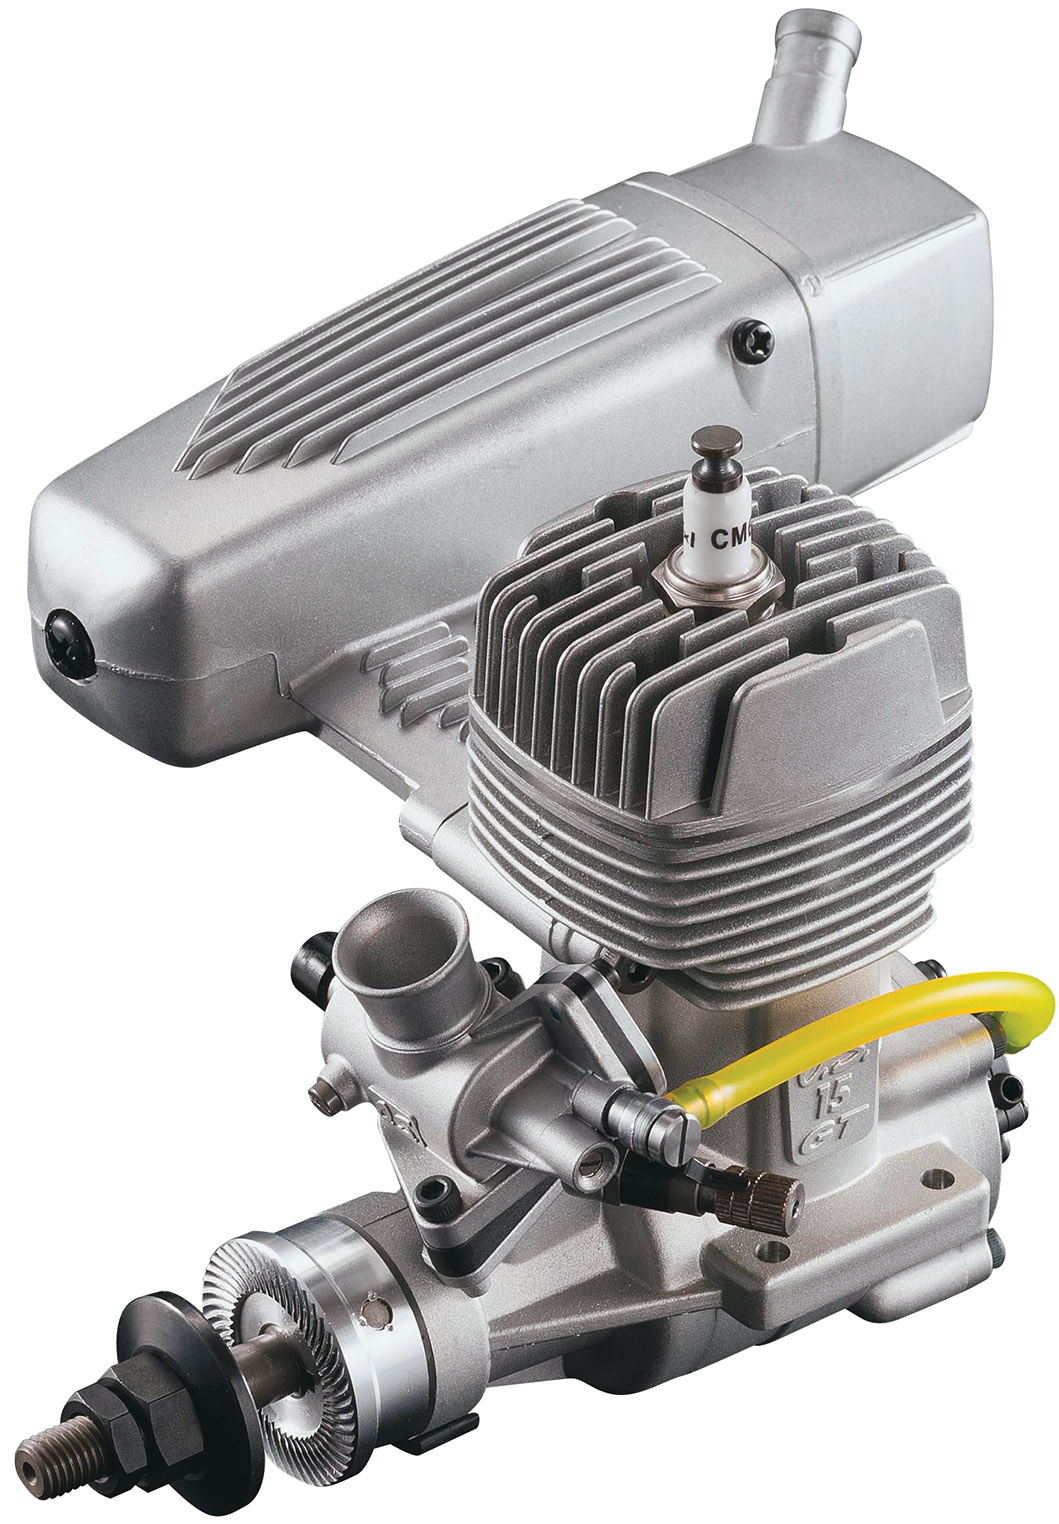 SmallBlock RC Gas Engine Guide A New Generation of compact – Diagram Of An Rc Nitro Engine